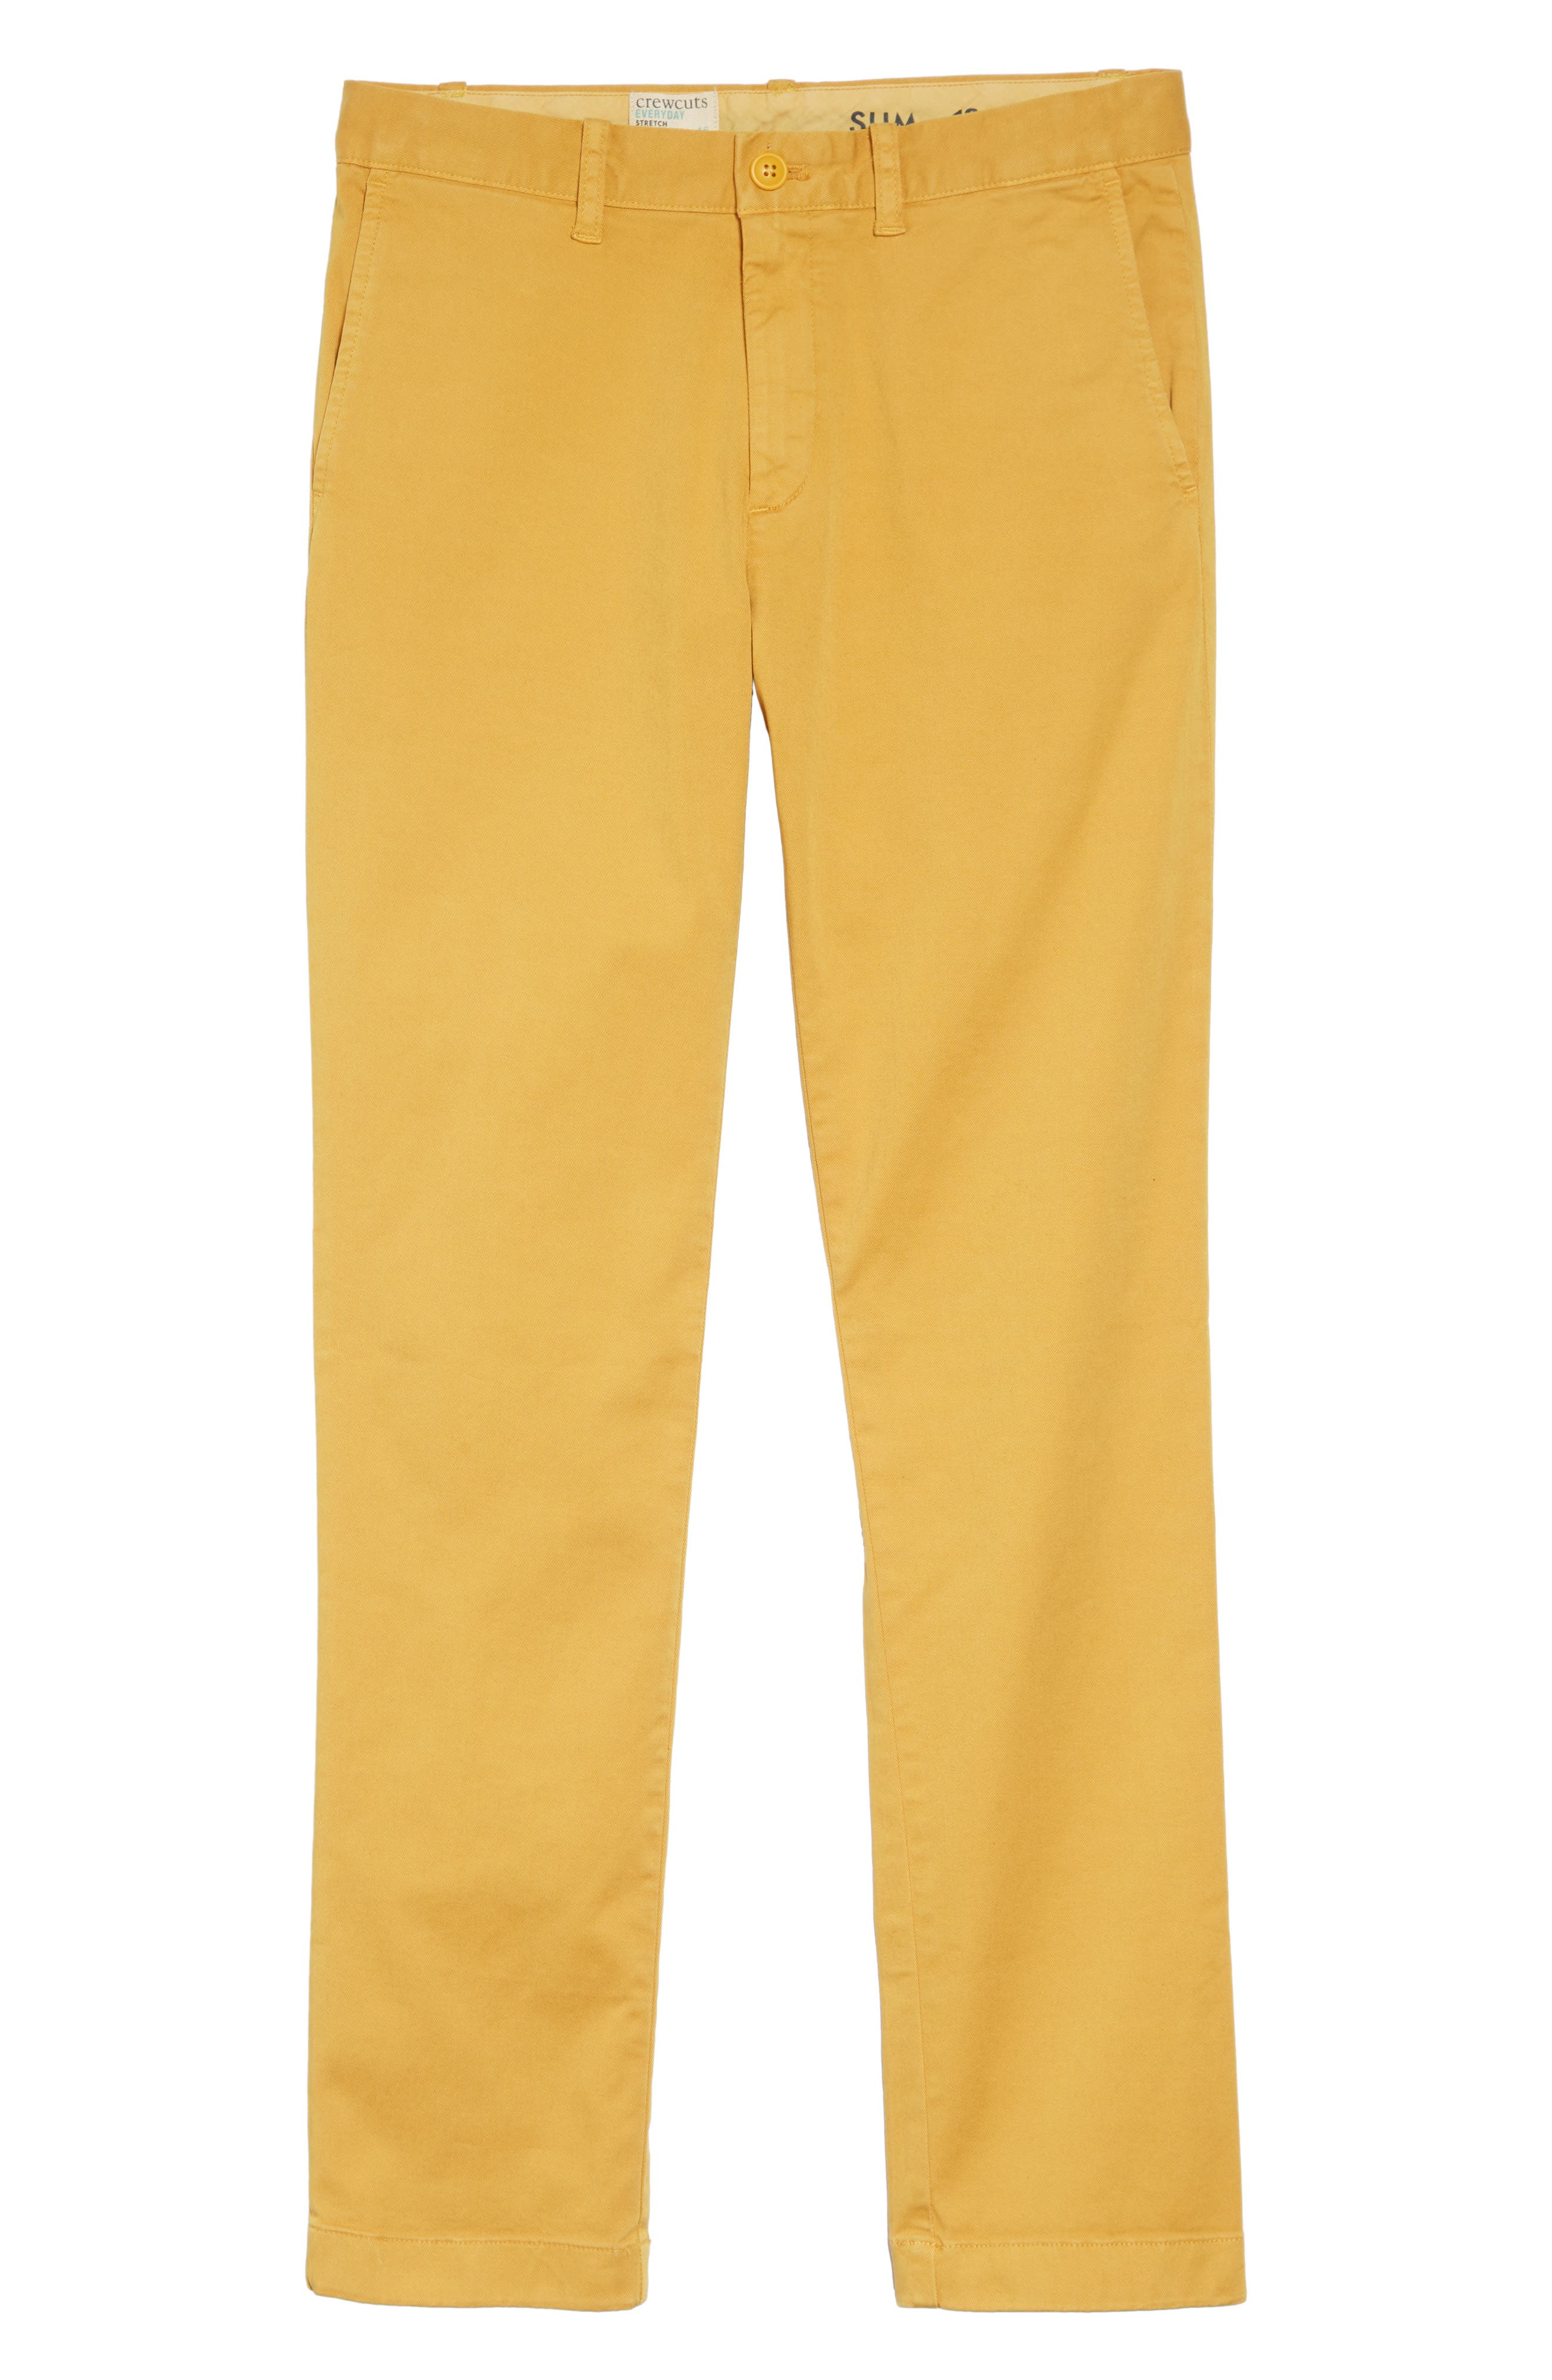 Stretch Chino Pants,                         Main,                         color, BRIGHT AMBER